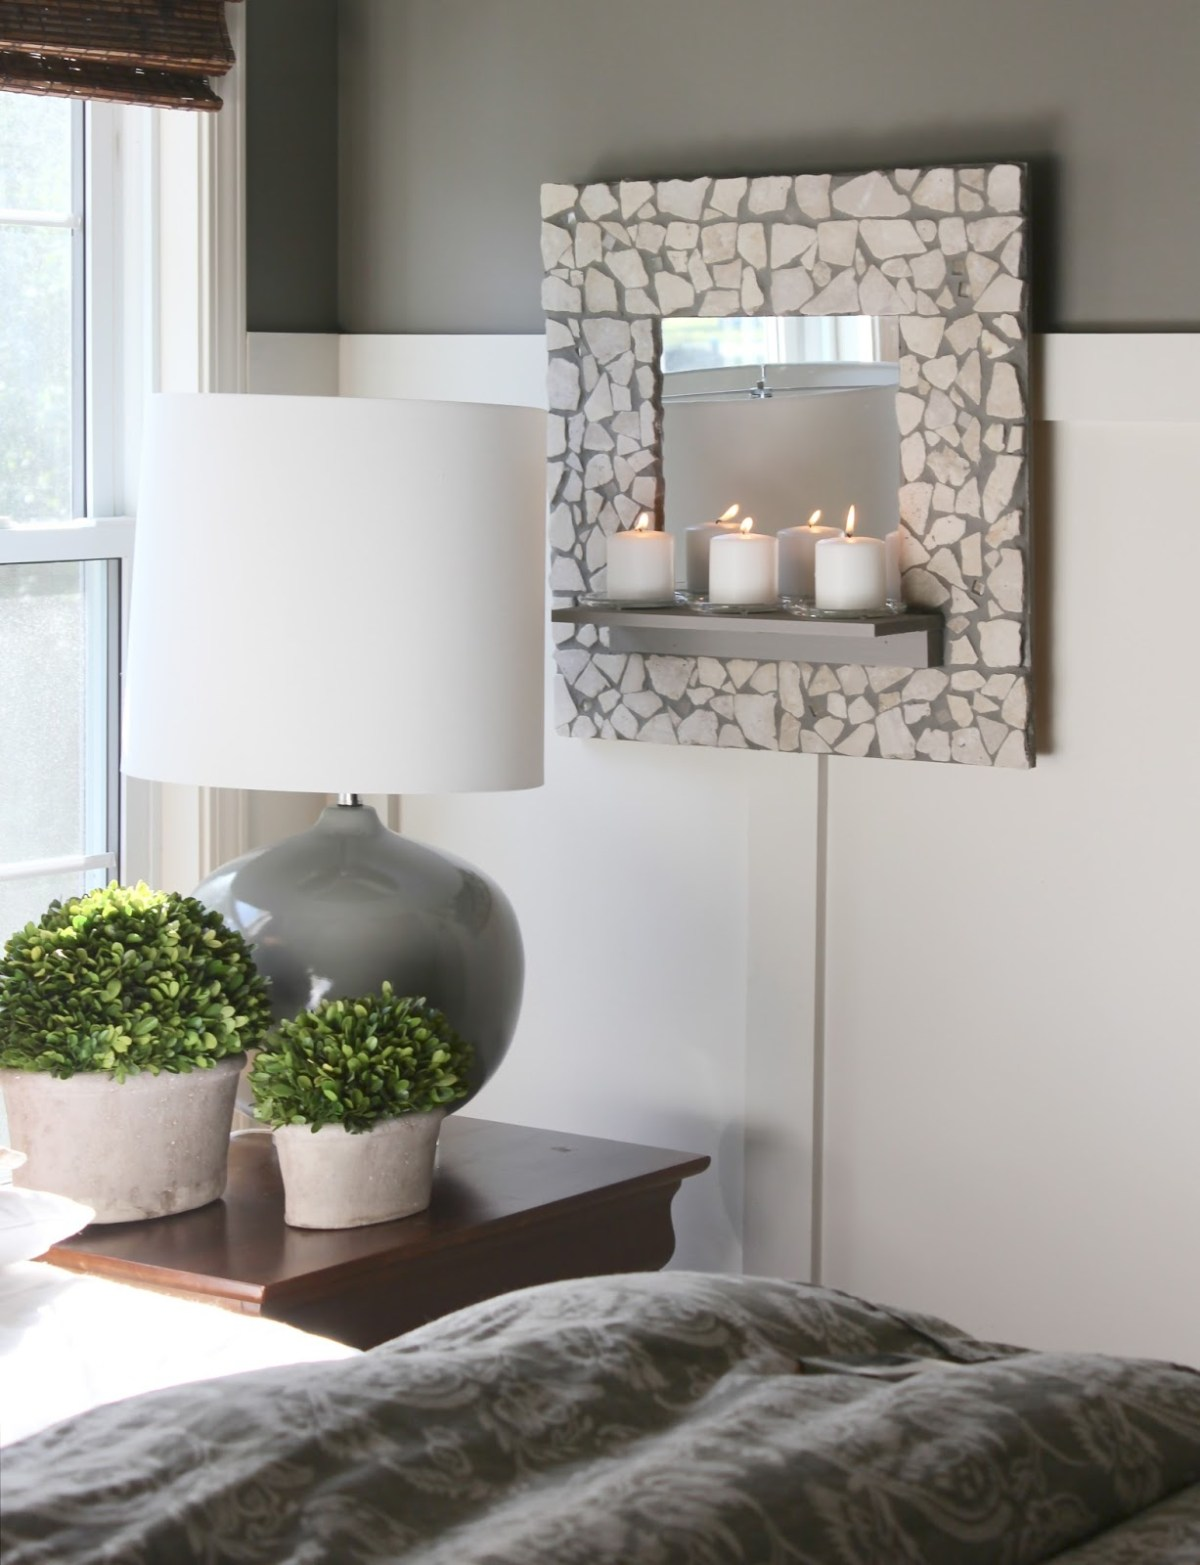 Mosaic shelf mirror Most-Wanted Mosaic Projects Where Any One Want To Try At Home